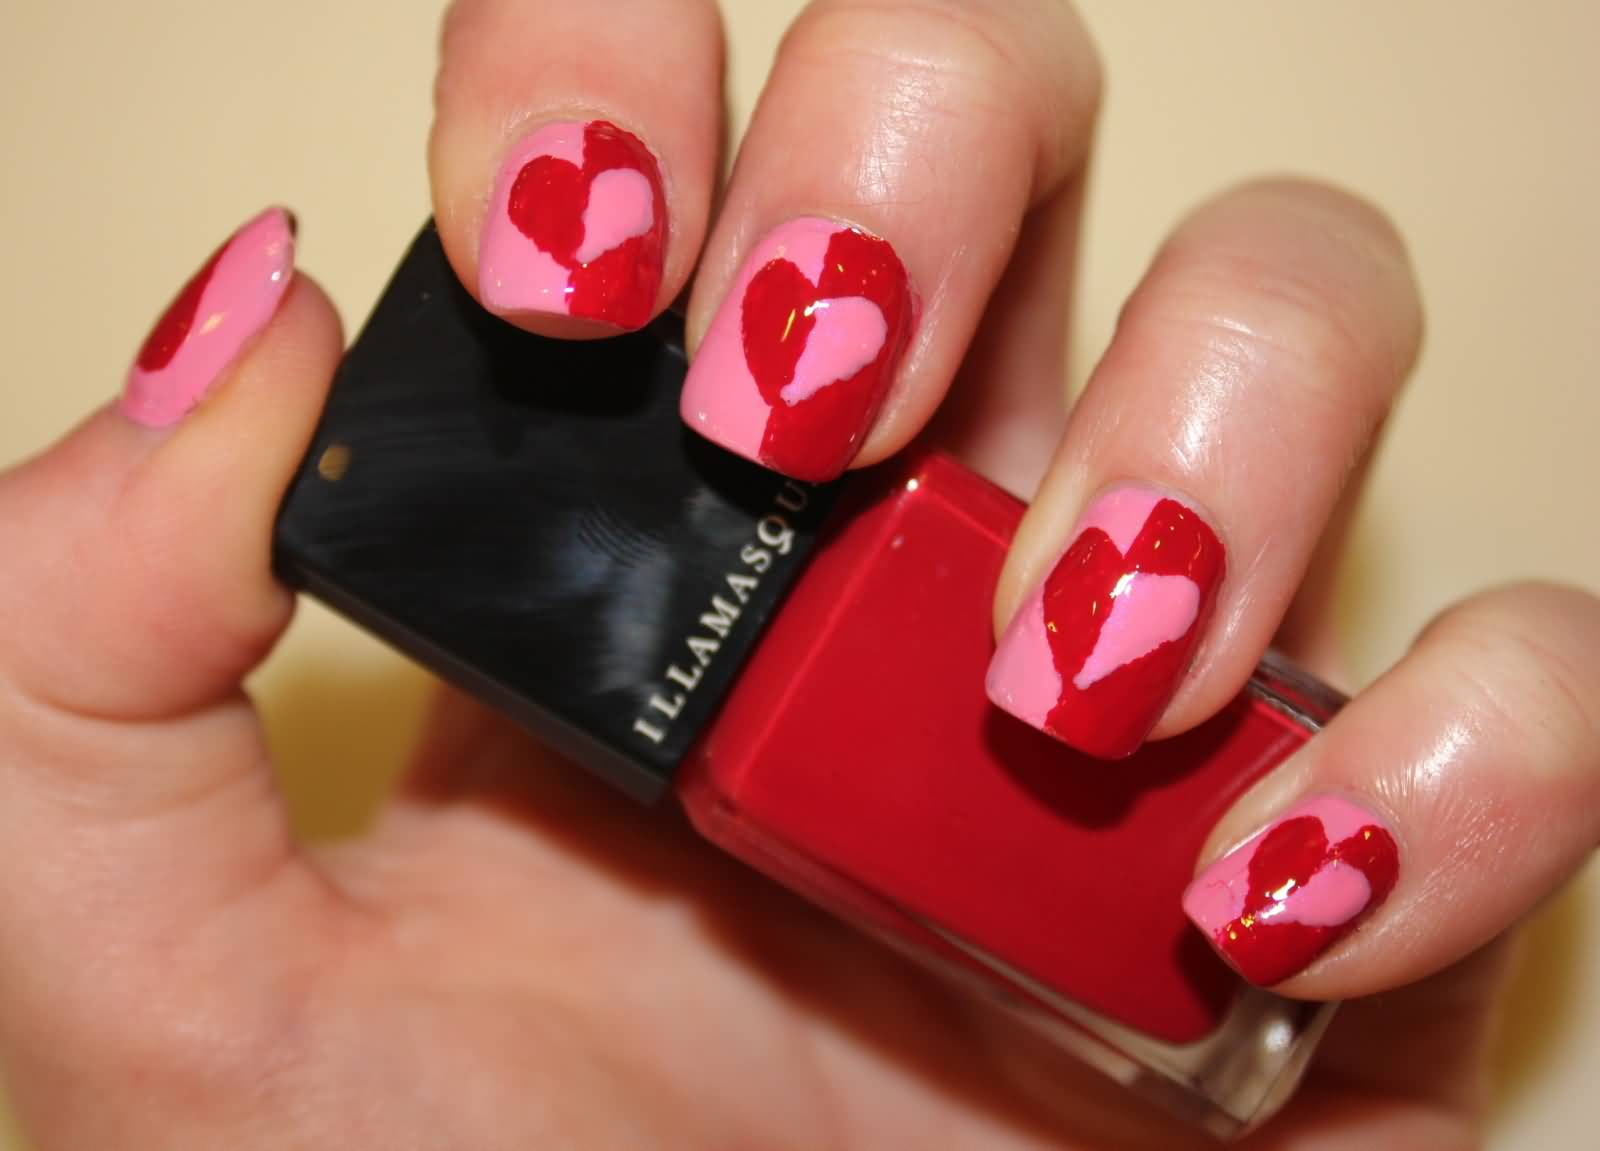 red and pink hearts nail art idea - Nail Art Designs Ideas